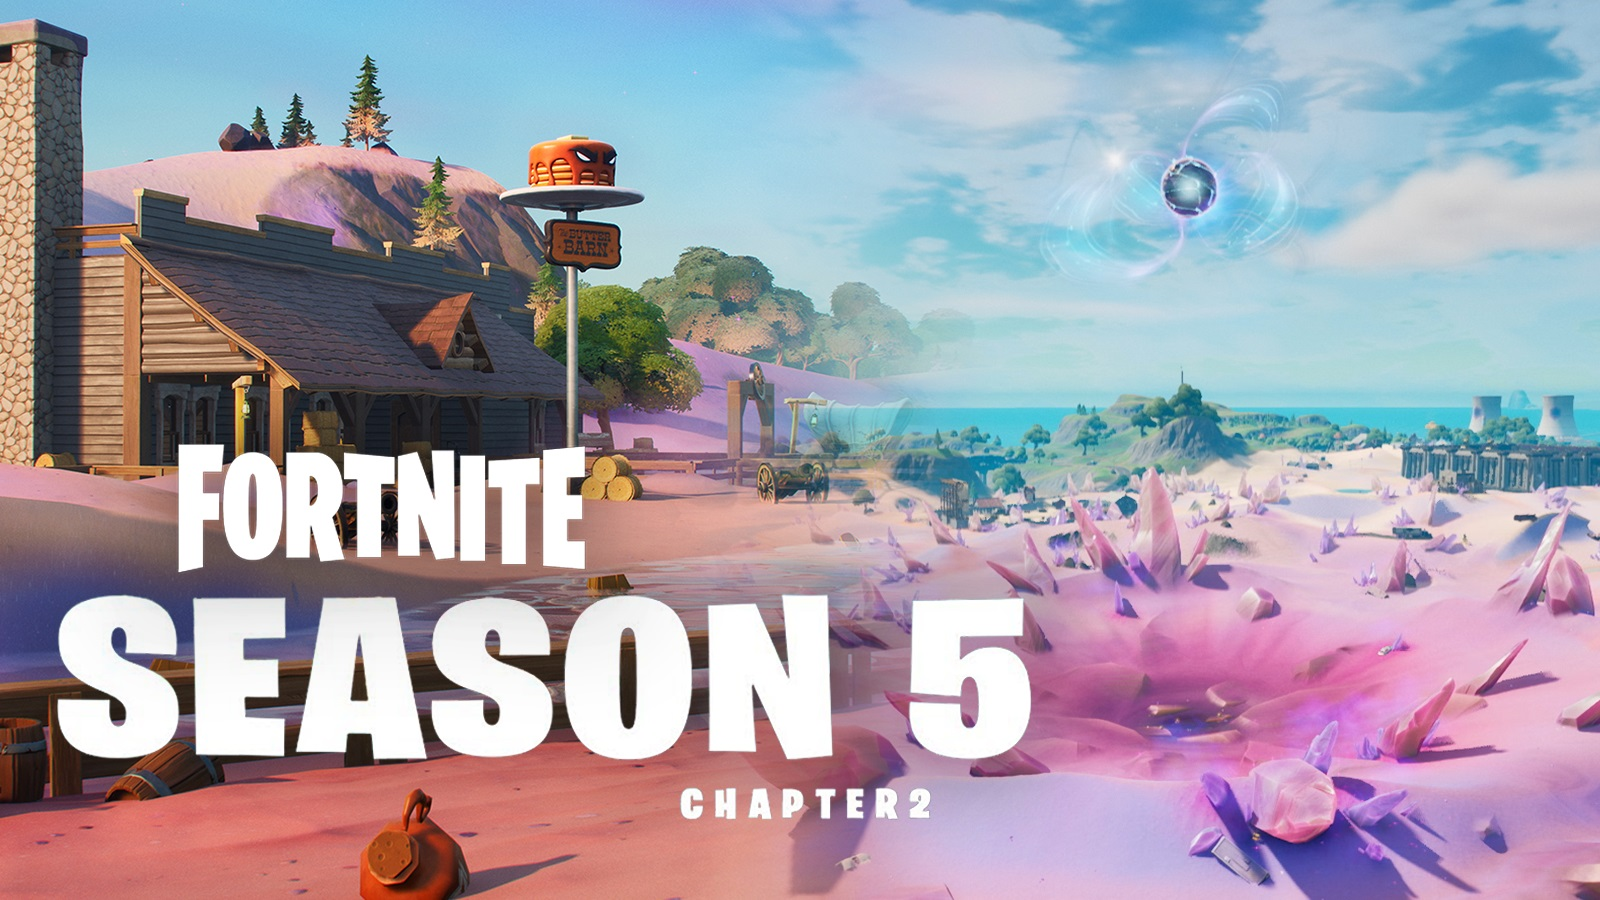 Fortnite Season 5 Map Changes Salty Towers Zero Point More Dexerto It is implied that it is the core or heart of reality, keeping it stable and making interdimensional connections with other realities and destabilises time when unstable. fortnite season 5 map changes salty